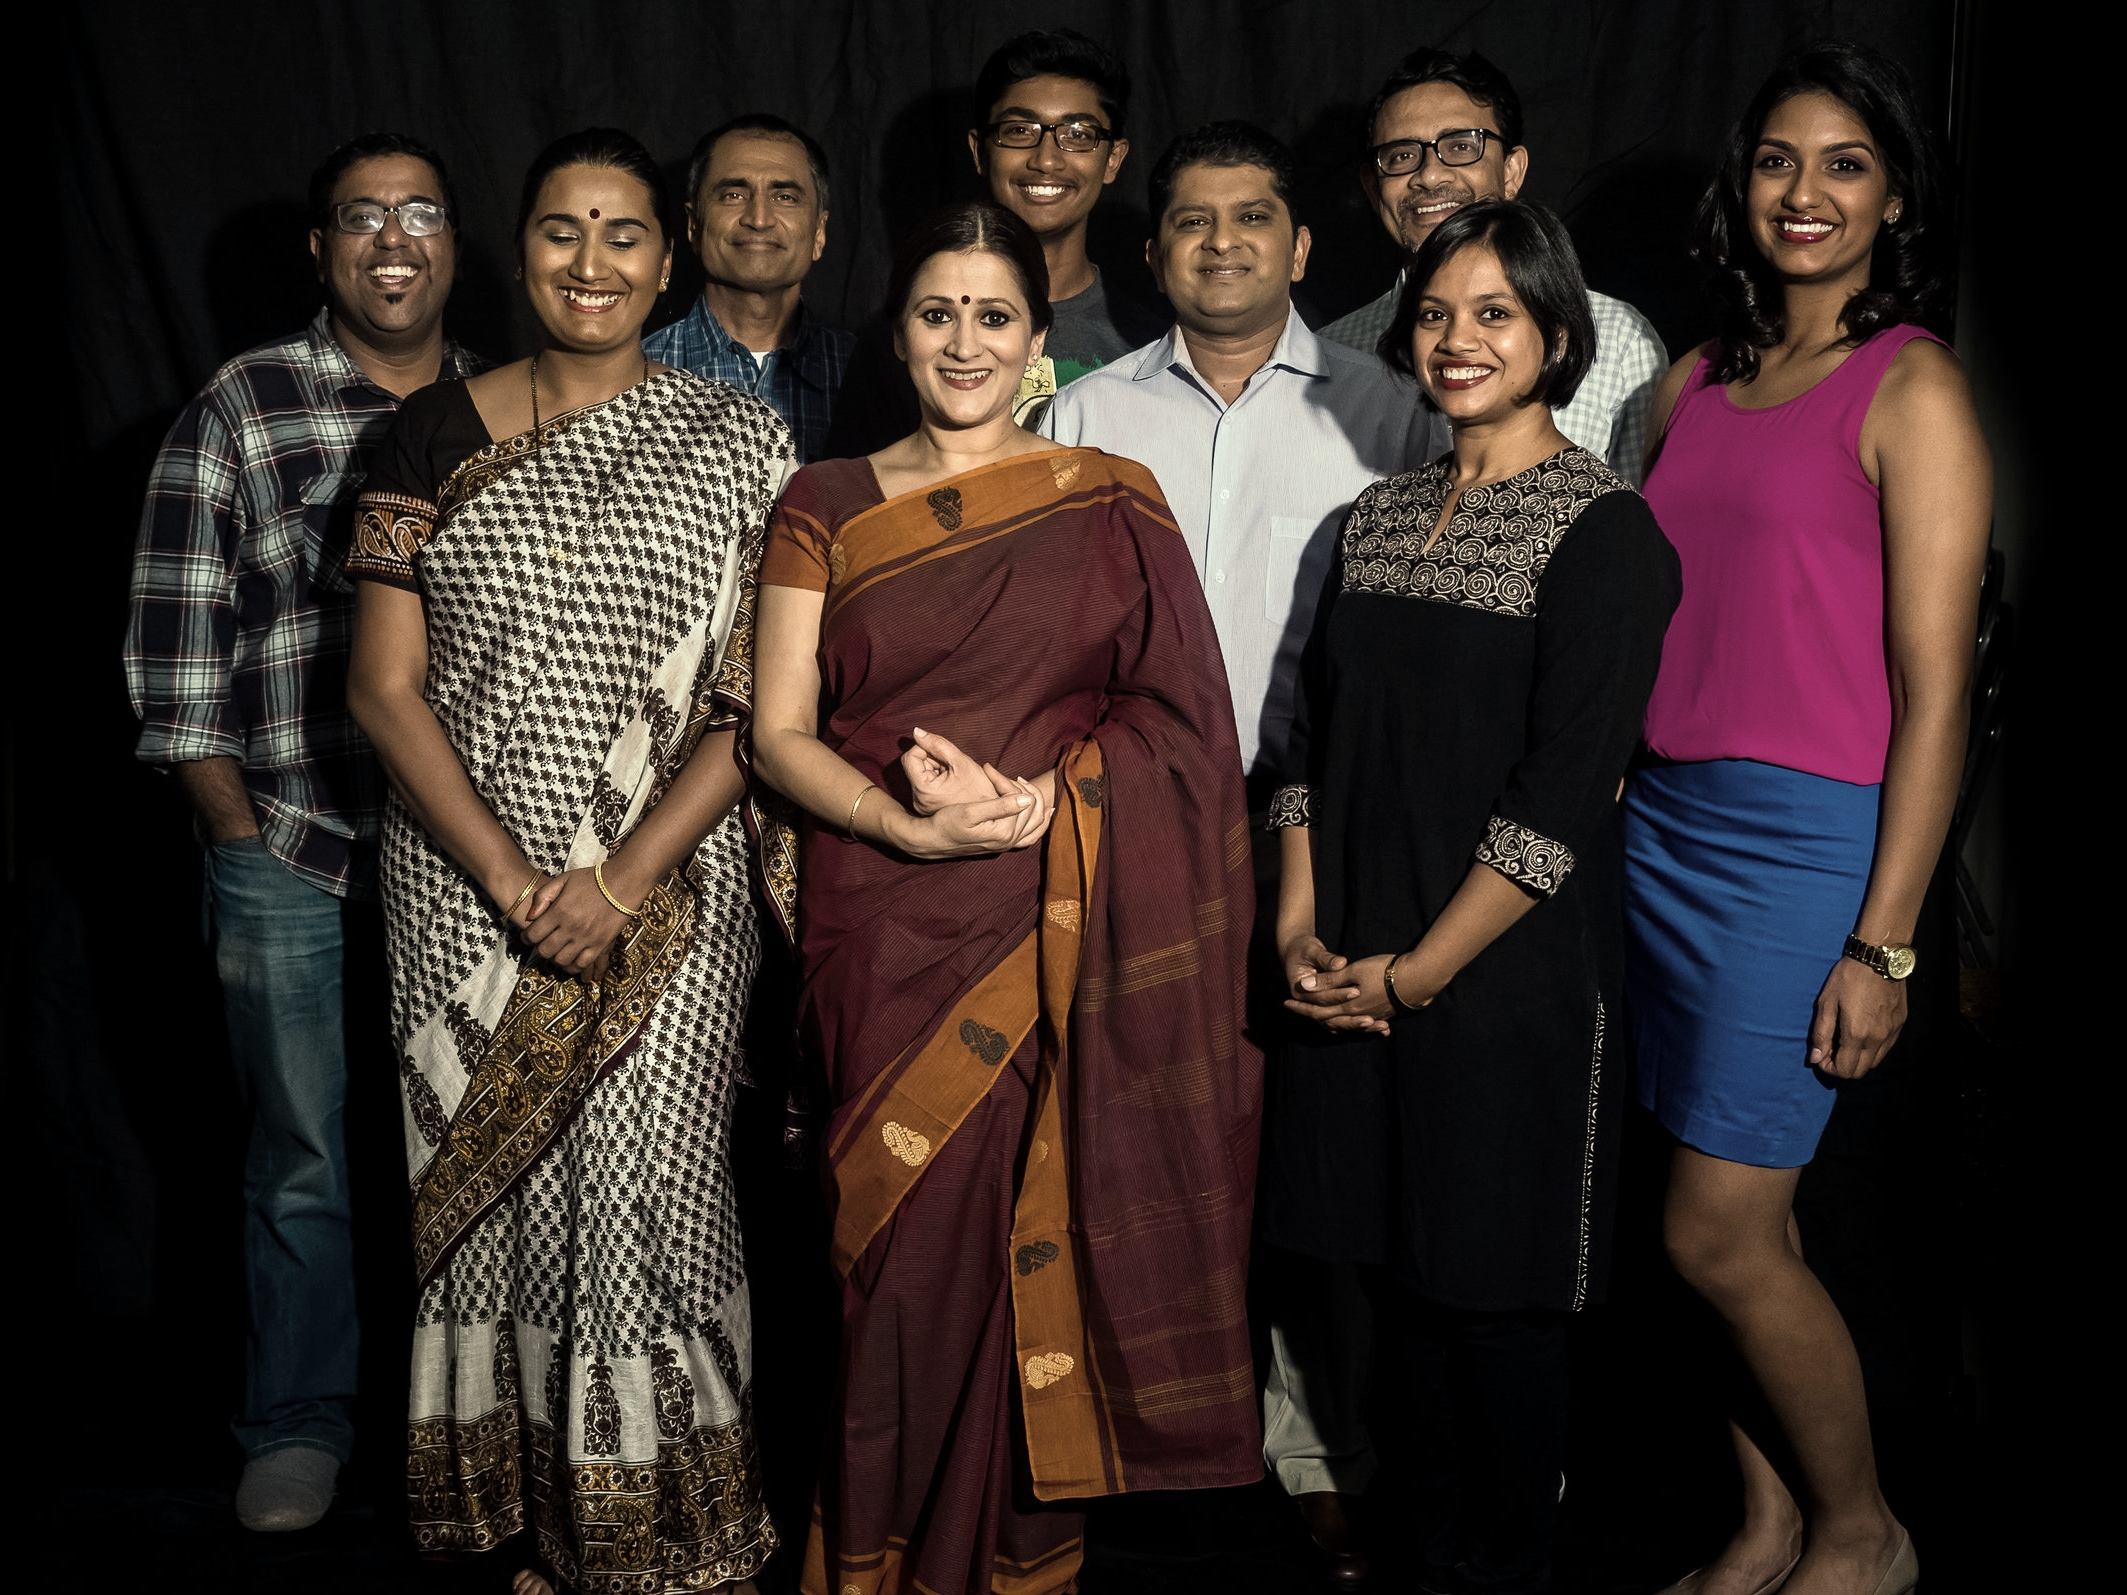 From left to right: Shiva Arunachalam, Prapti Oswal, Neil Vasant, Sindu Singh, Rohan Rangarajan, Pratish Shah, Basab Pradhan, Rashi Garg and Akshaya Ganesh